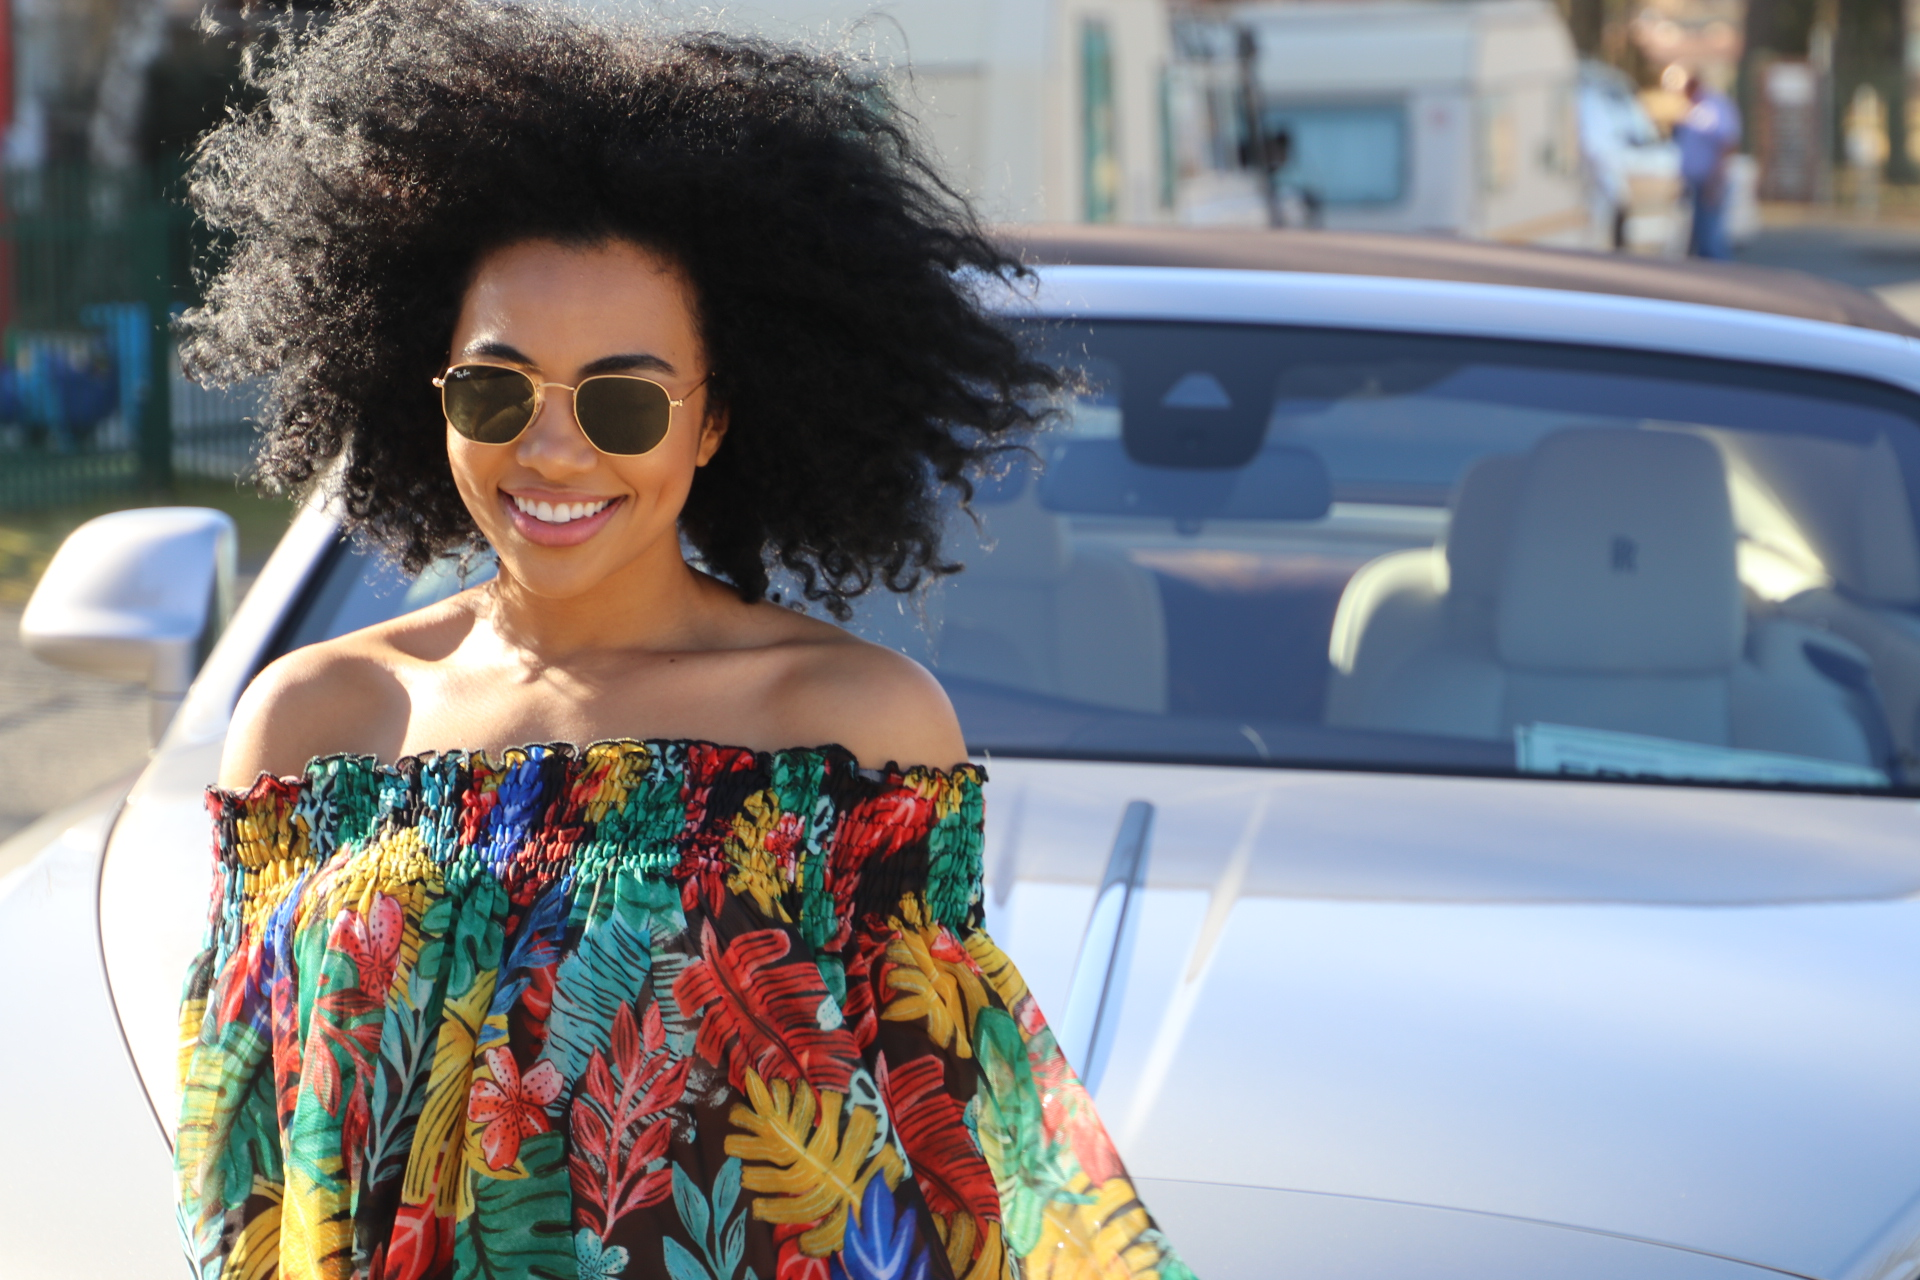 Rolls Royce roadtrip with _amandadupont